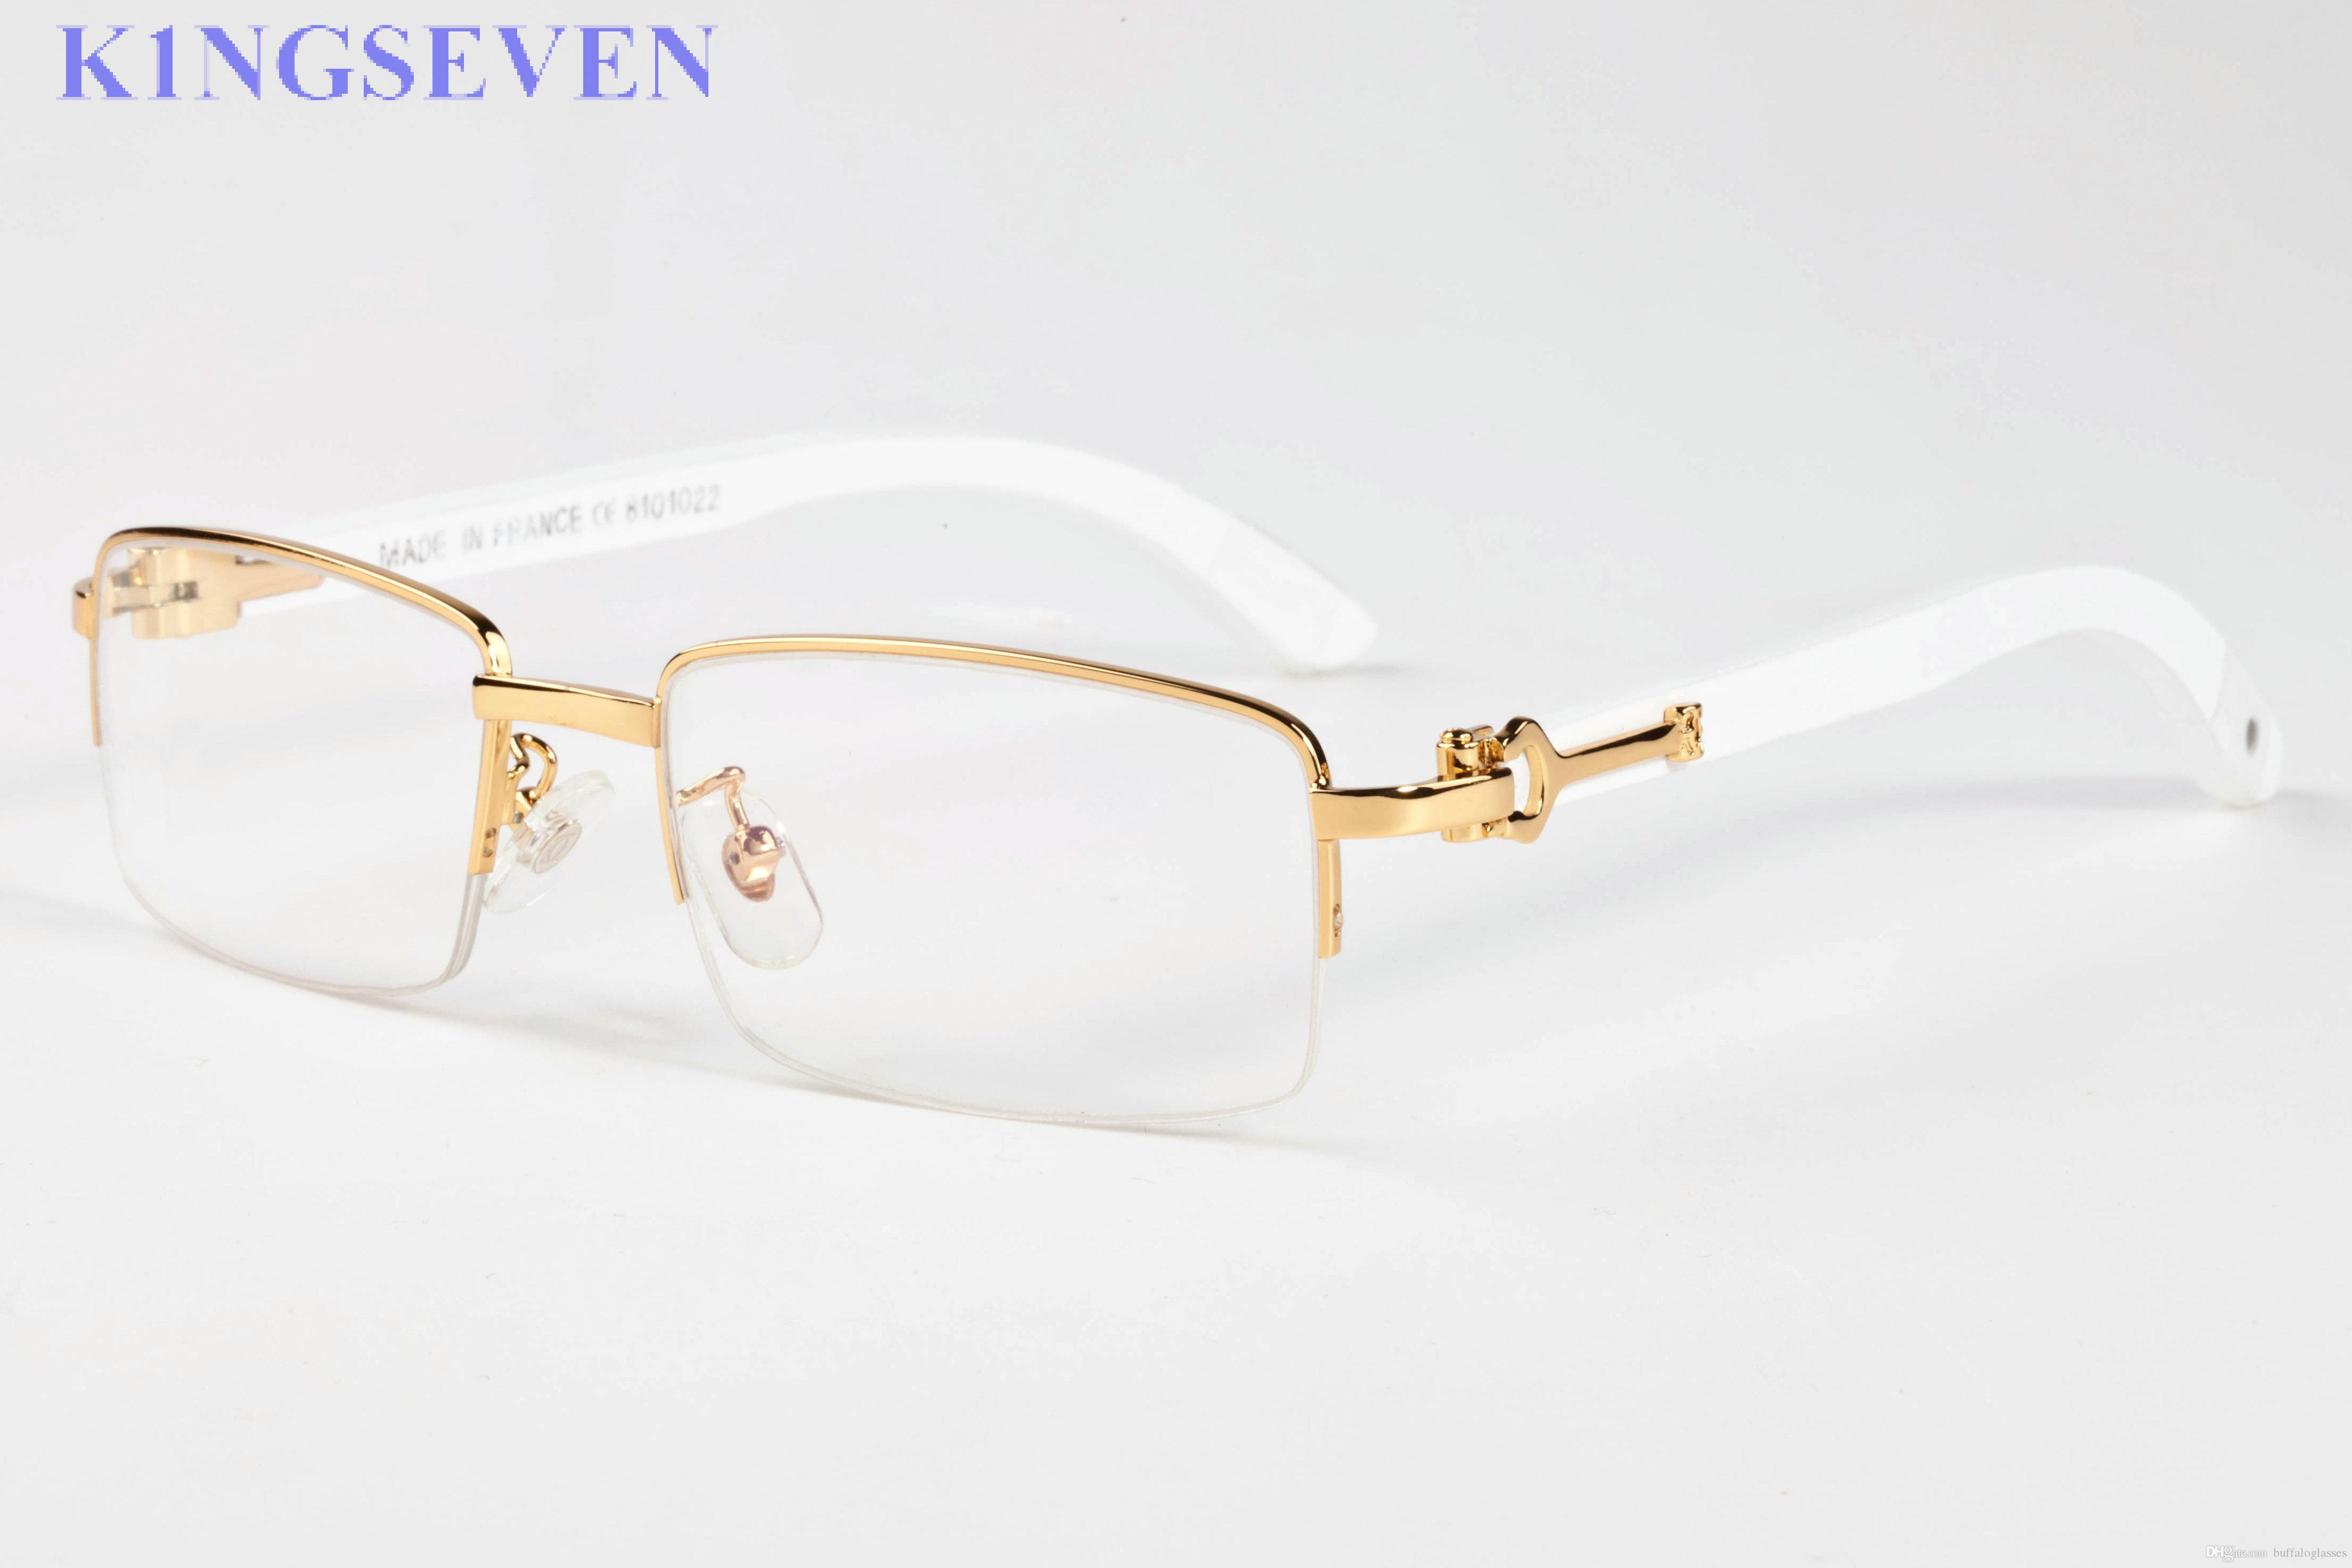 95244a2c0c5 Luxury Brand Sunglasses For Women Semi Rimless Men Buffalo Horn Glasses  With Case Gold White Wood Sunglasses With Box Case Locs Sunglasses Suncloud  ...